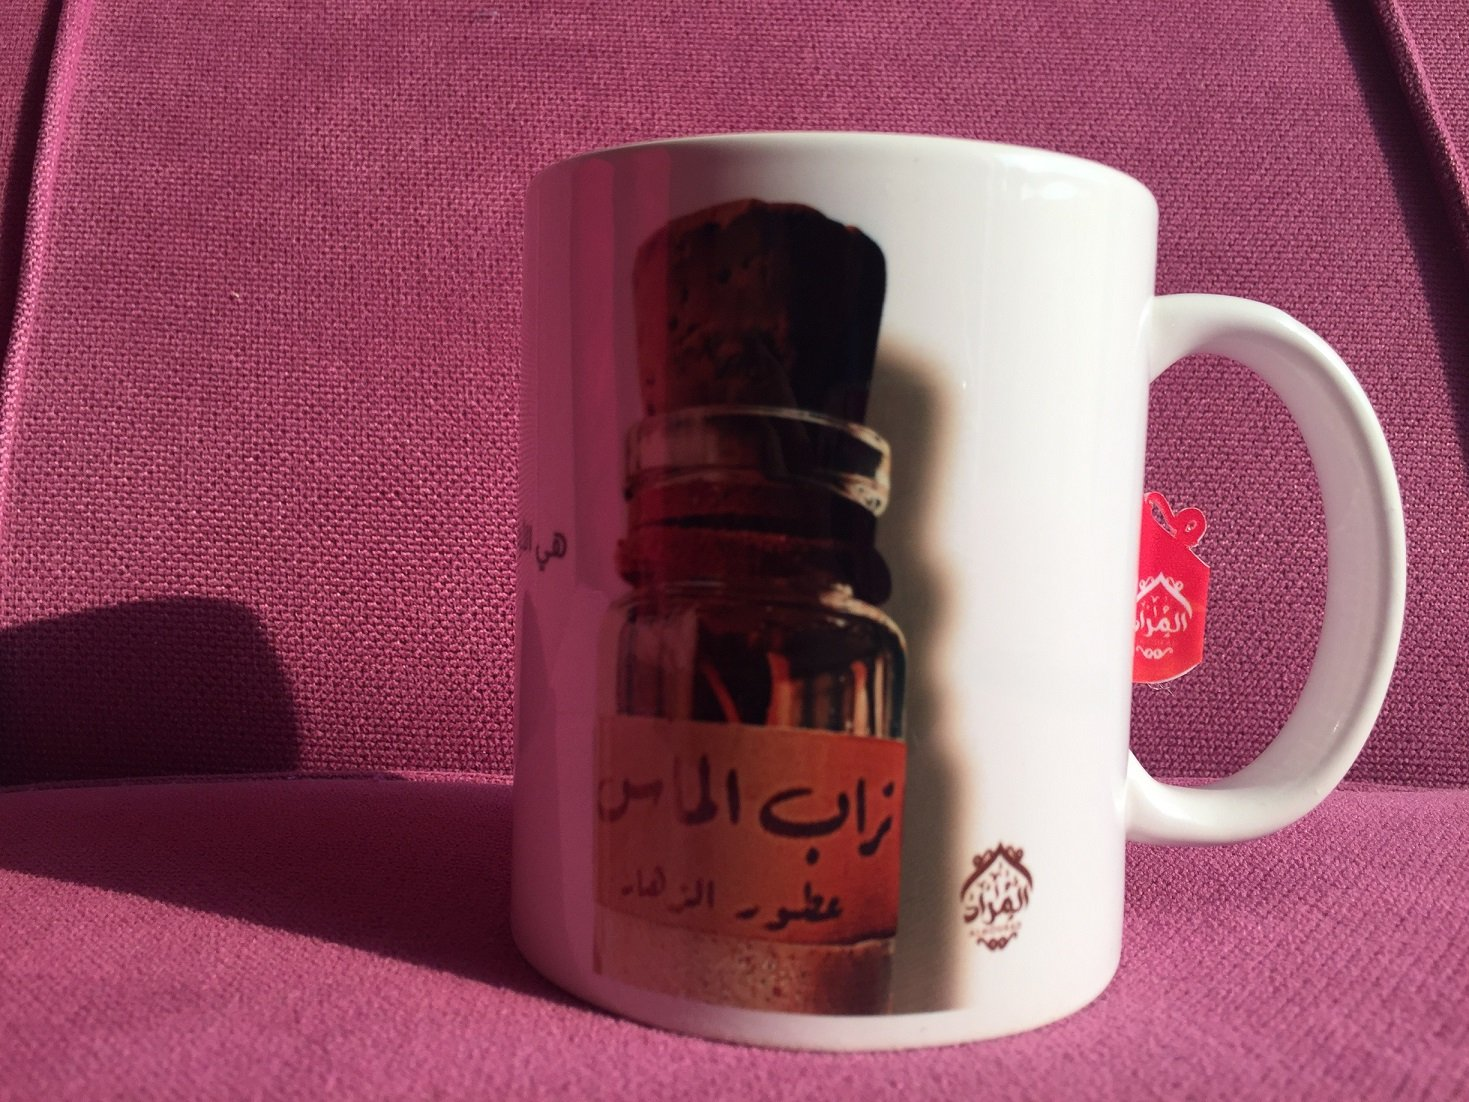 Diamond dust mug 2 - iRead